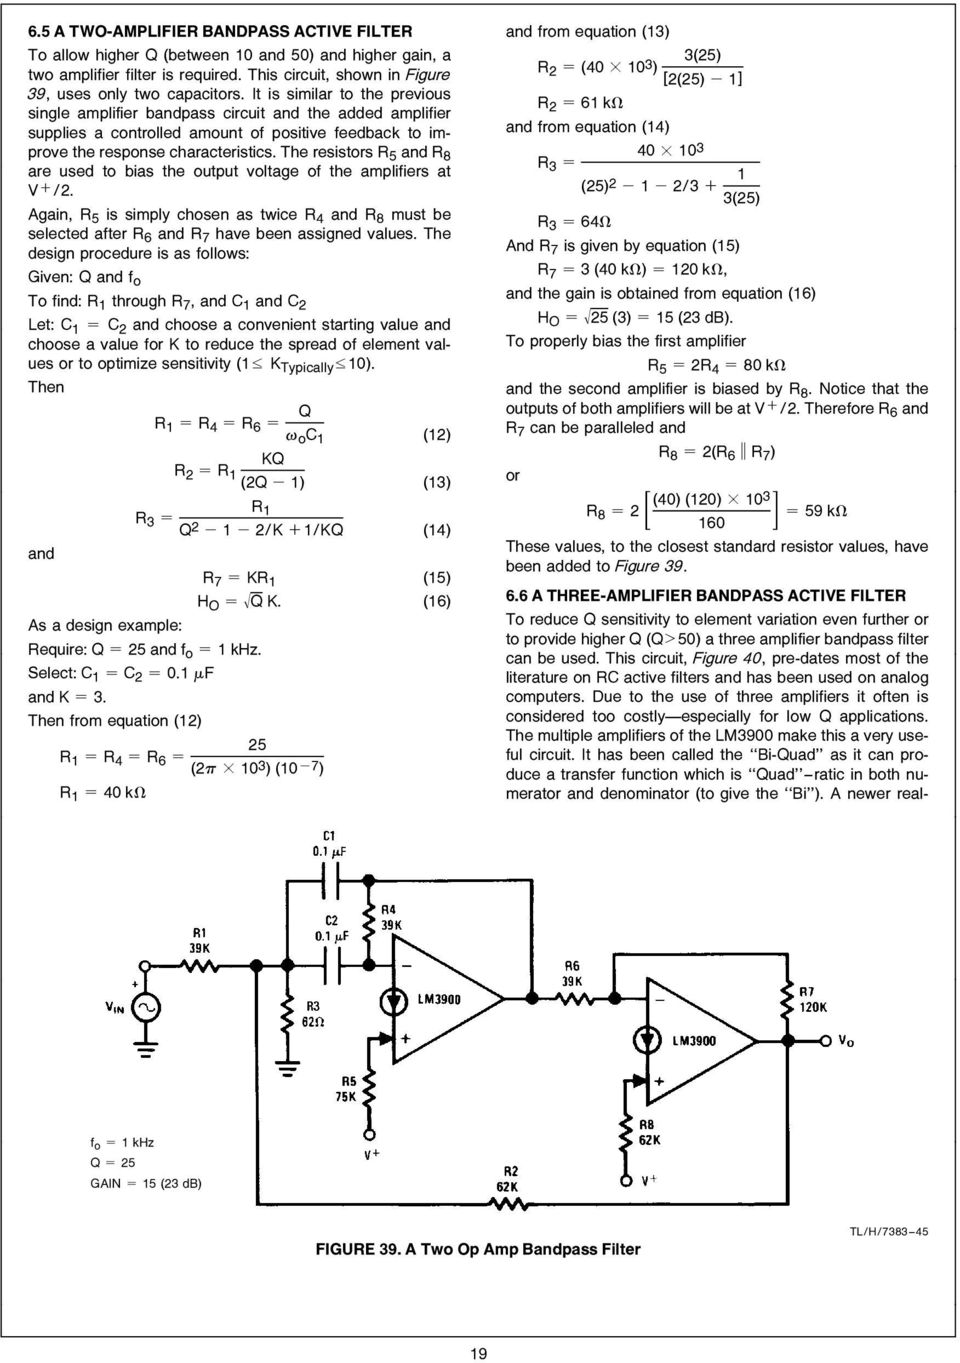 Lm3900 An 72 The A New Current Differencing Quad Of Plus Or Channel Audio Mixer Circuit Using Simple Schematic Diagram Are Used To Bias Output Voltage Amplifiers At V 2 Again R